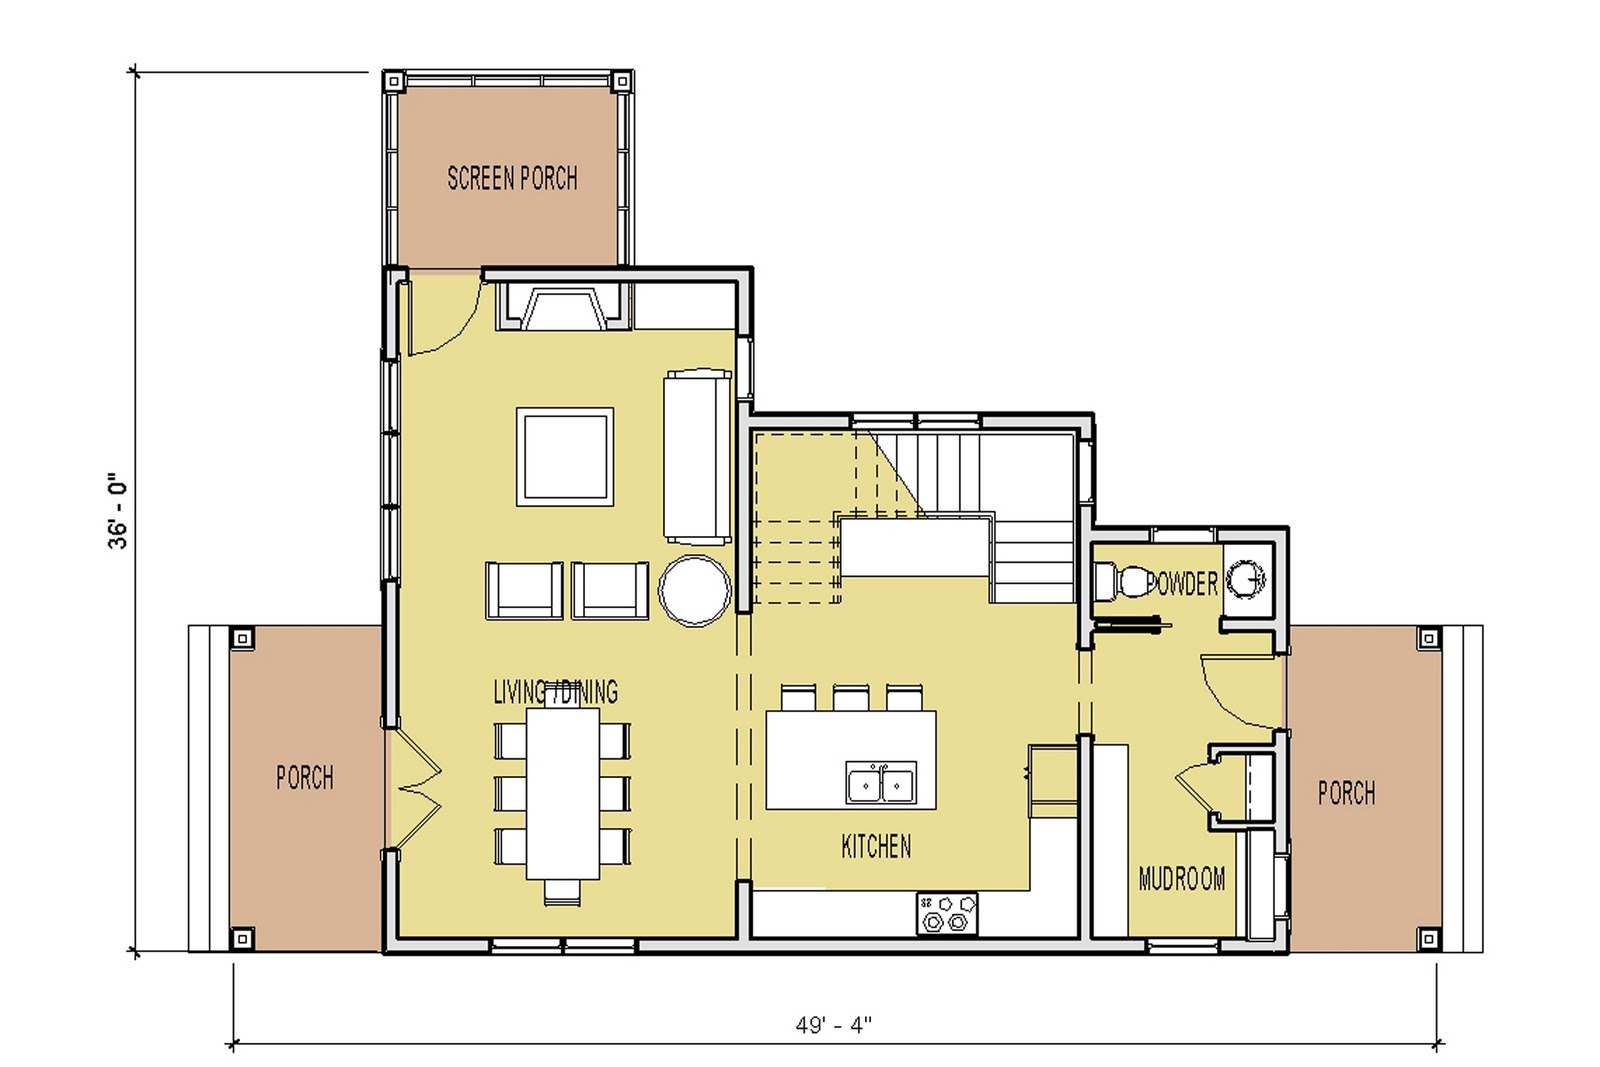 Simply elegant home designs blog new unique small house plan Small foursquare house plans